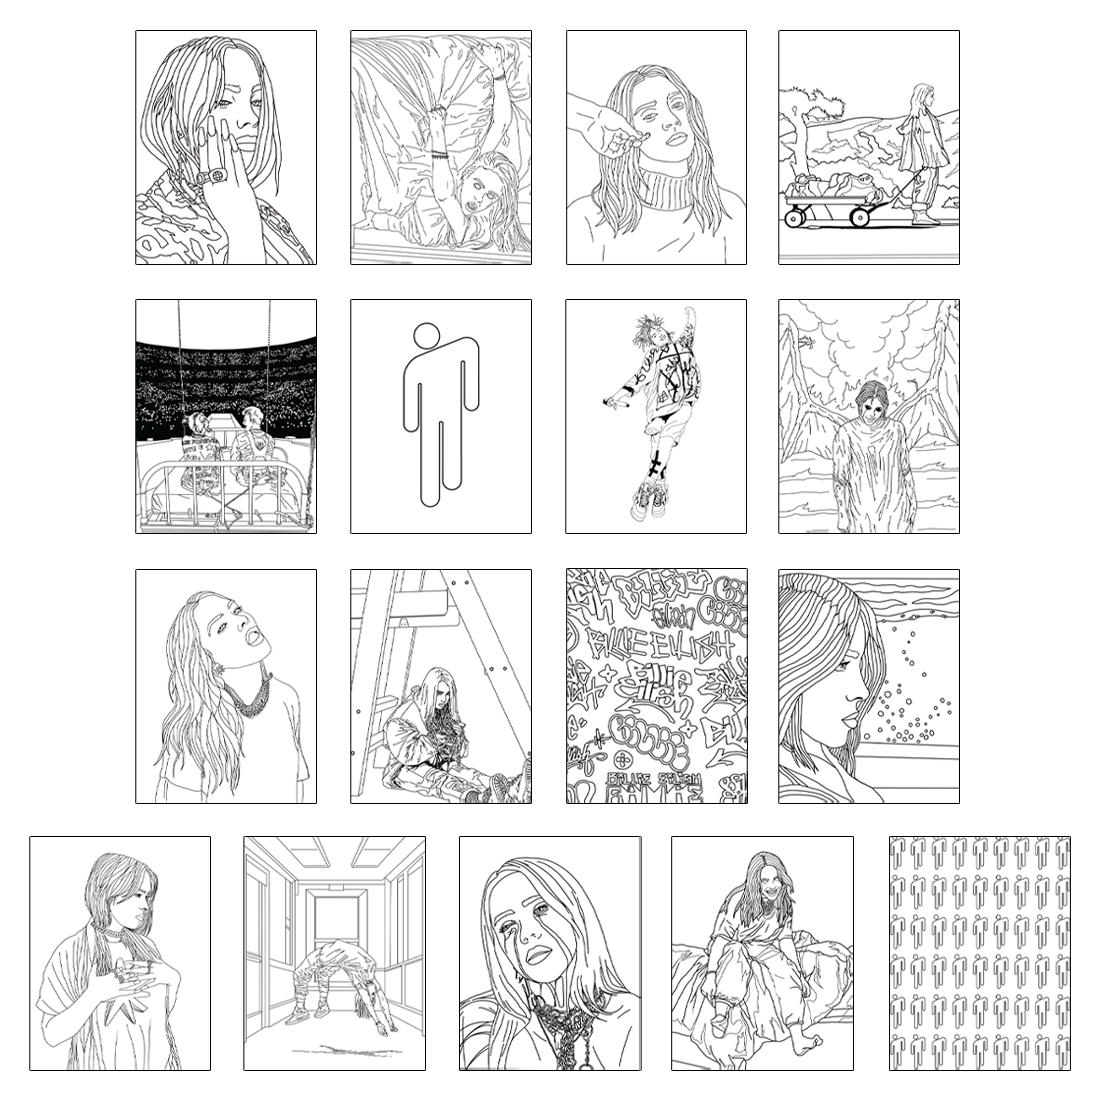 Billie Eilish Releases 'Pick Your Donation' Coloring Book ...